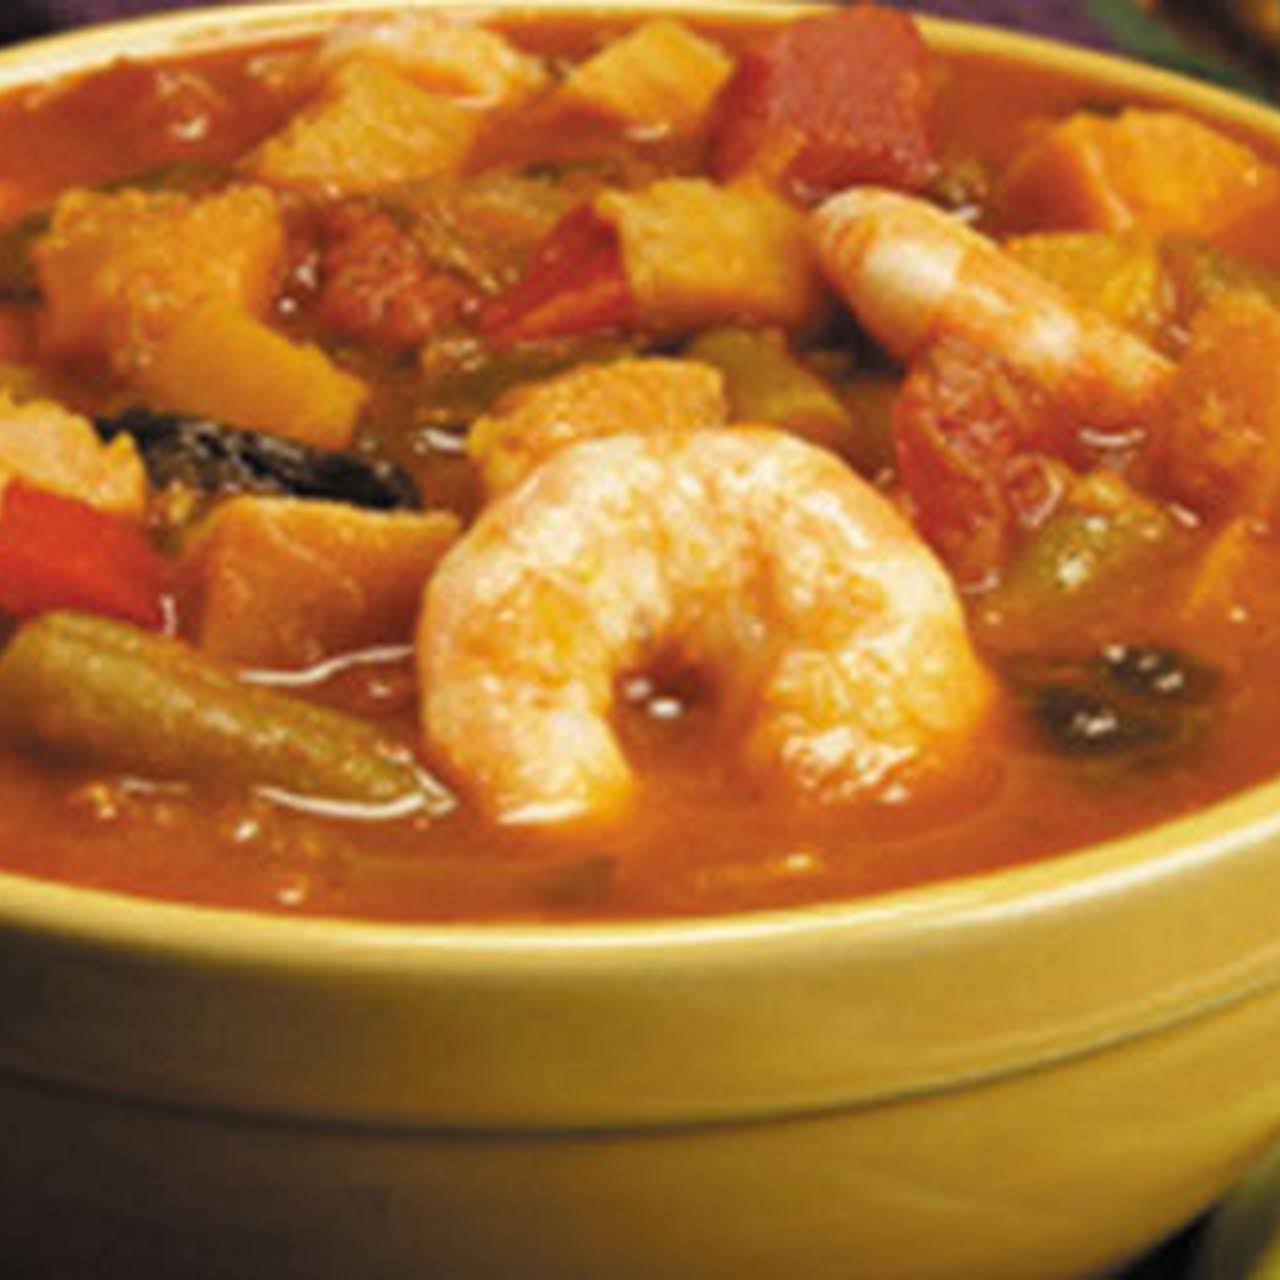 Shrimp and Yam Soup